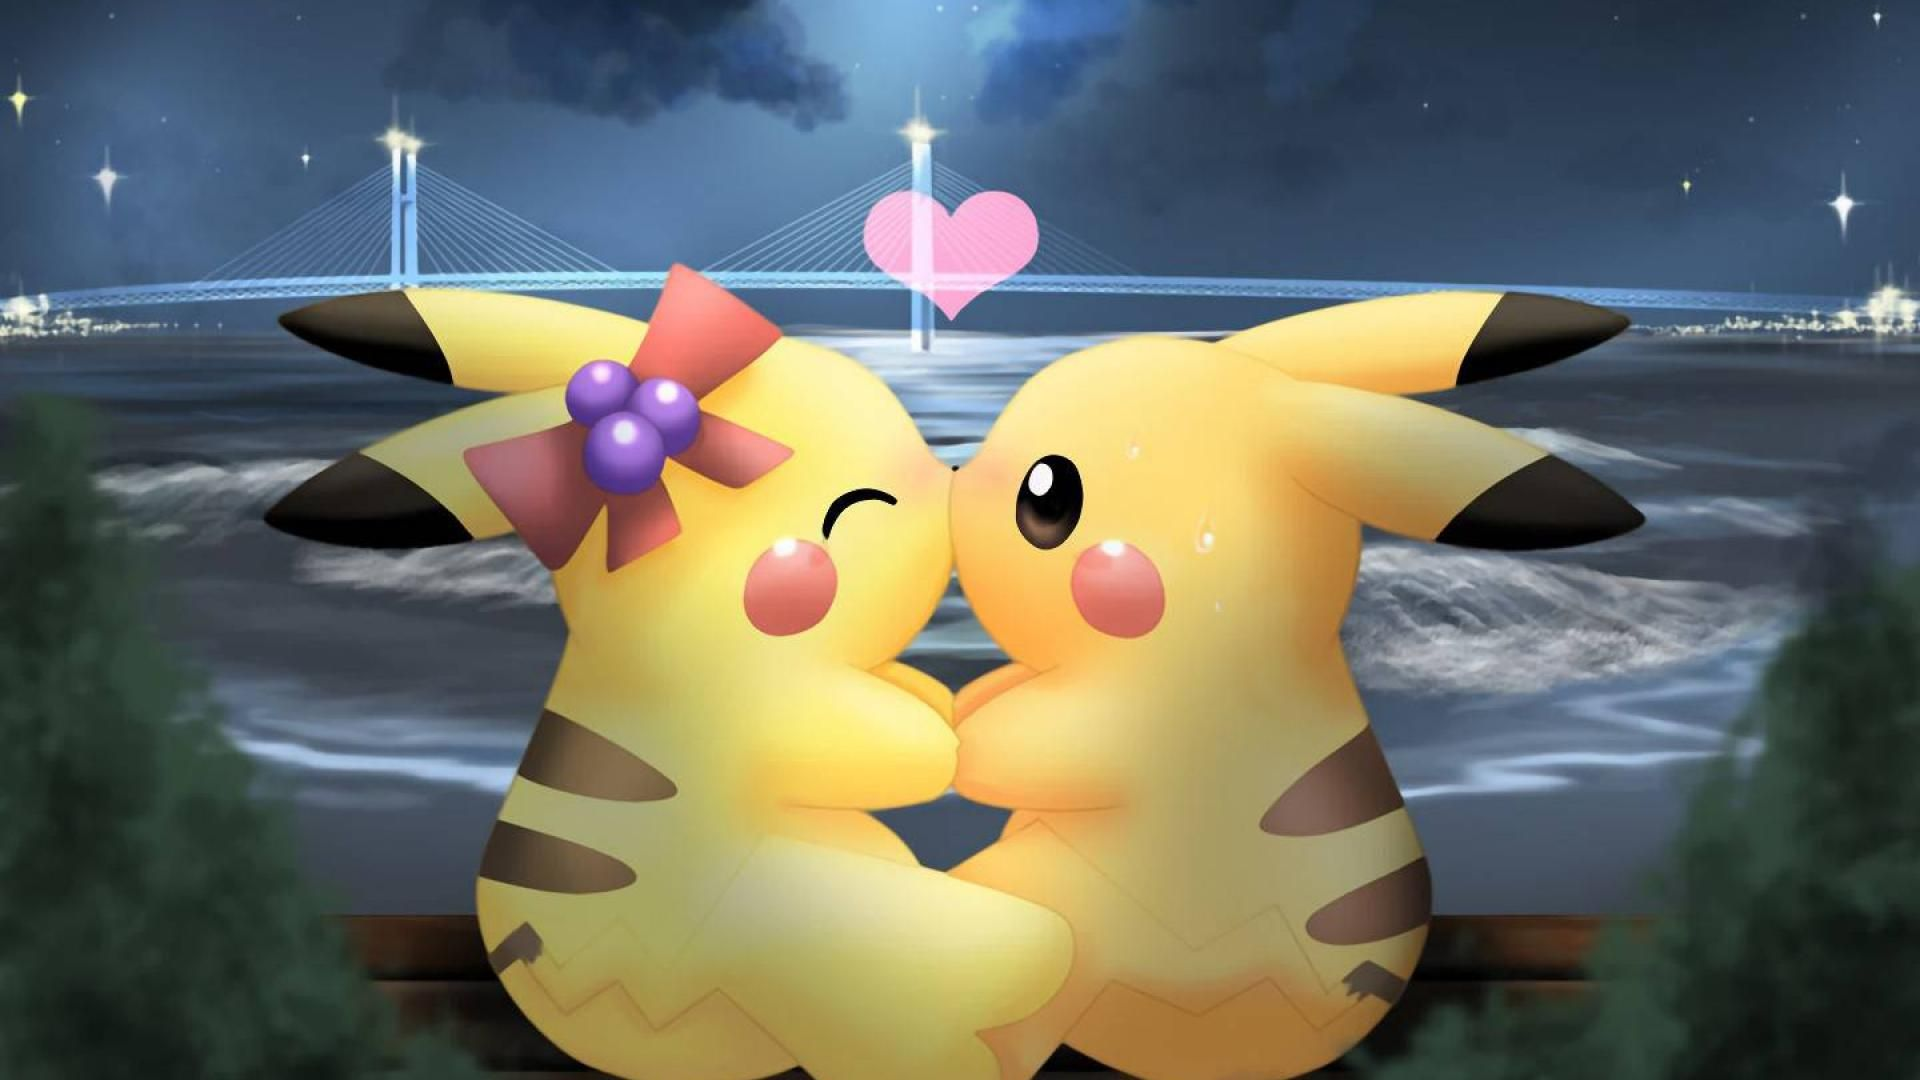 Love pikachu wallpaper (13983) High Quality and